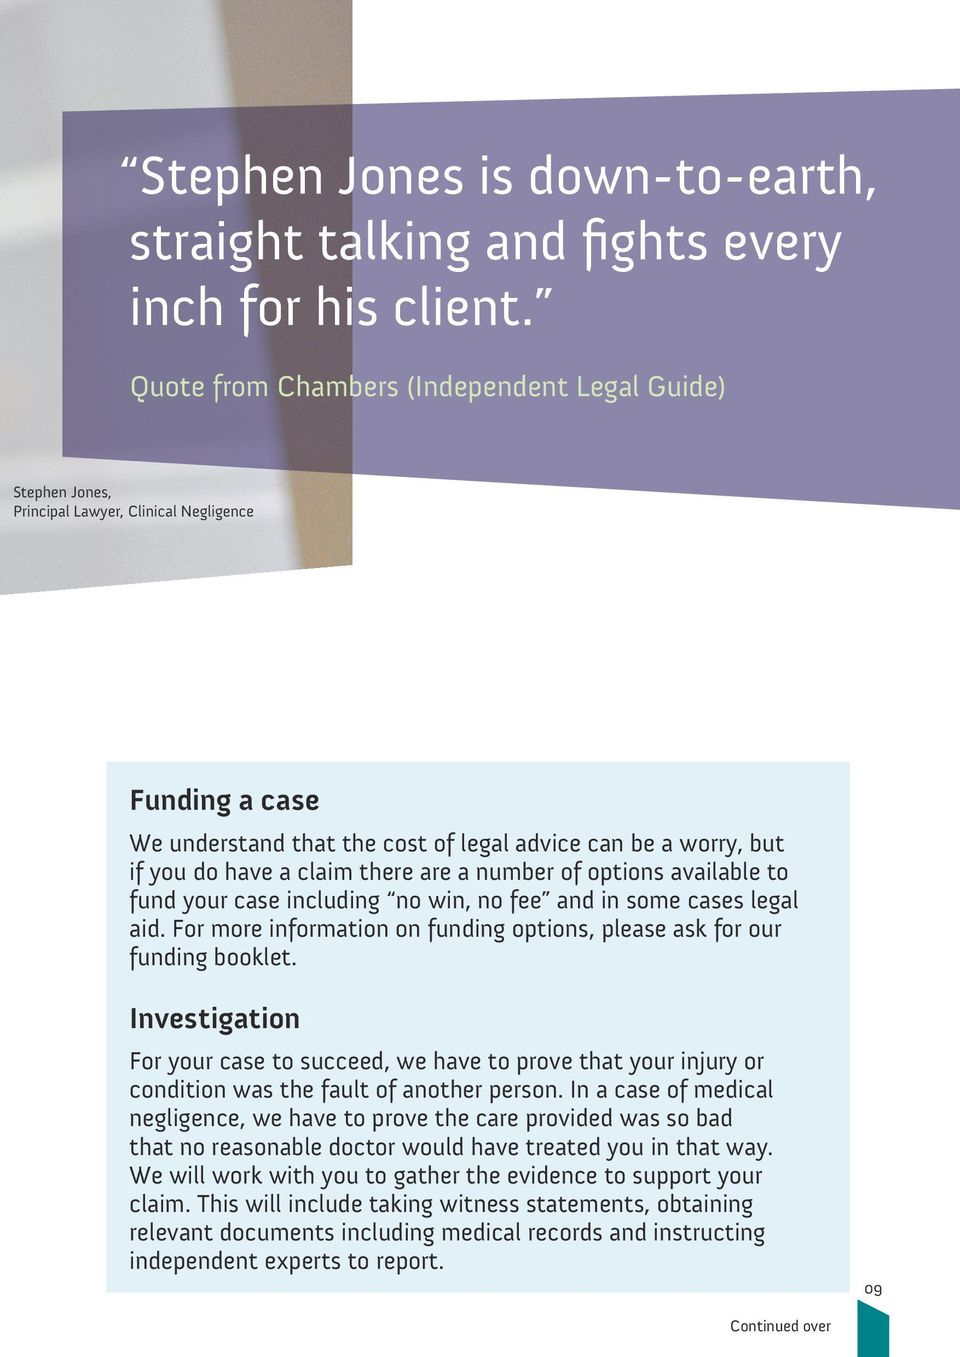 claim there are a number of options available to fund your case including no win, no fee and in some cases legal aid. For more information on funding options, please ask for our funding booklet.